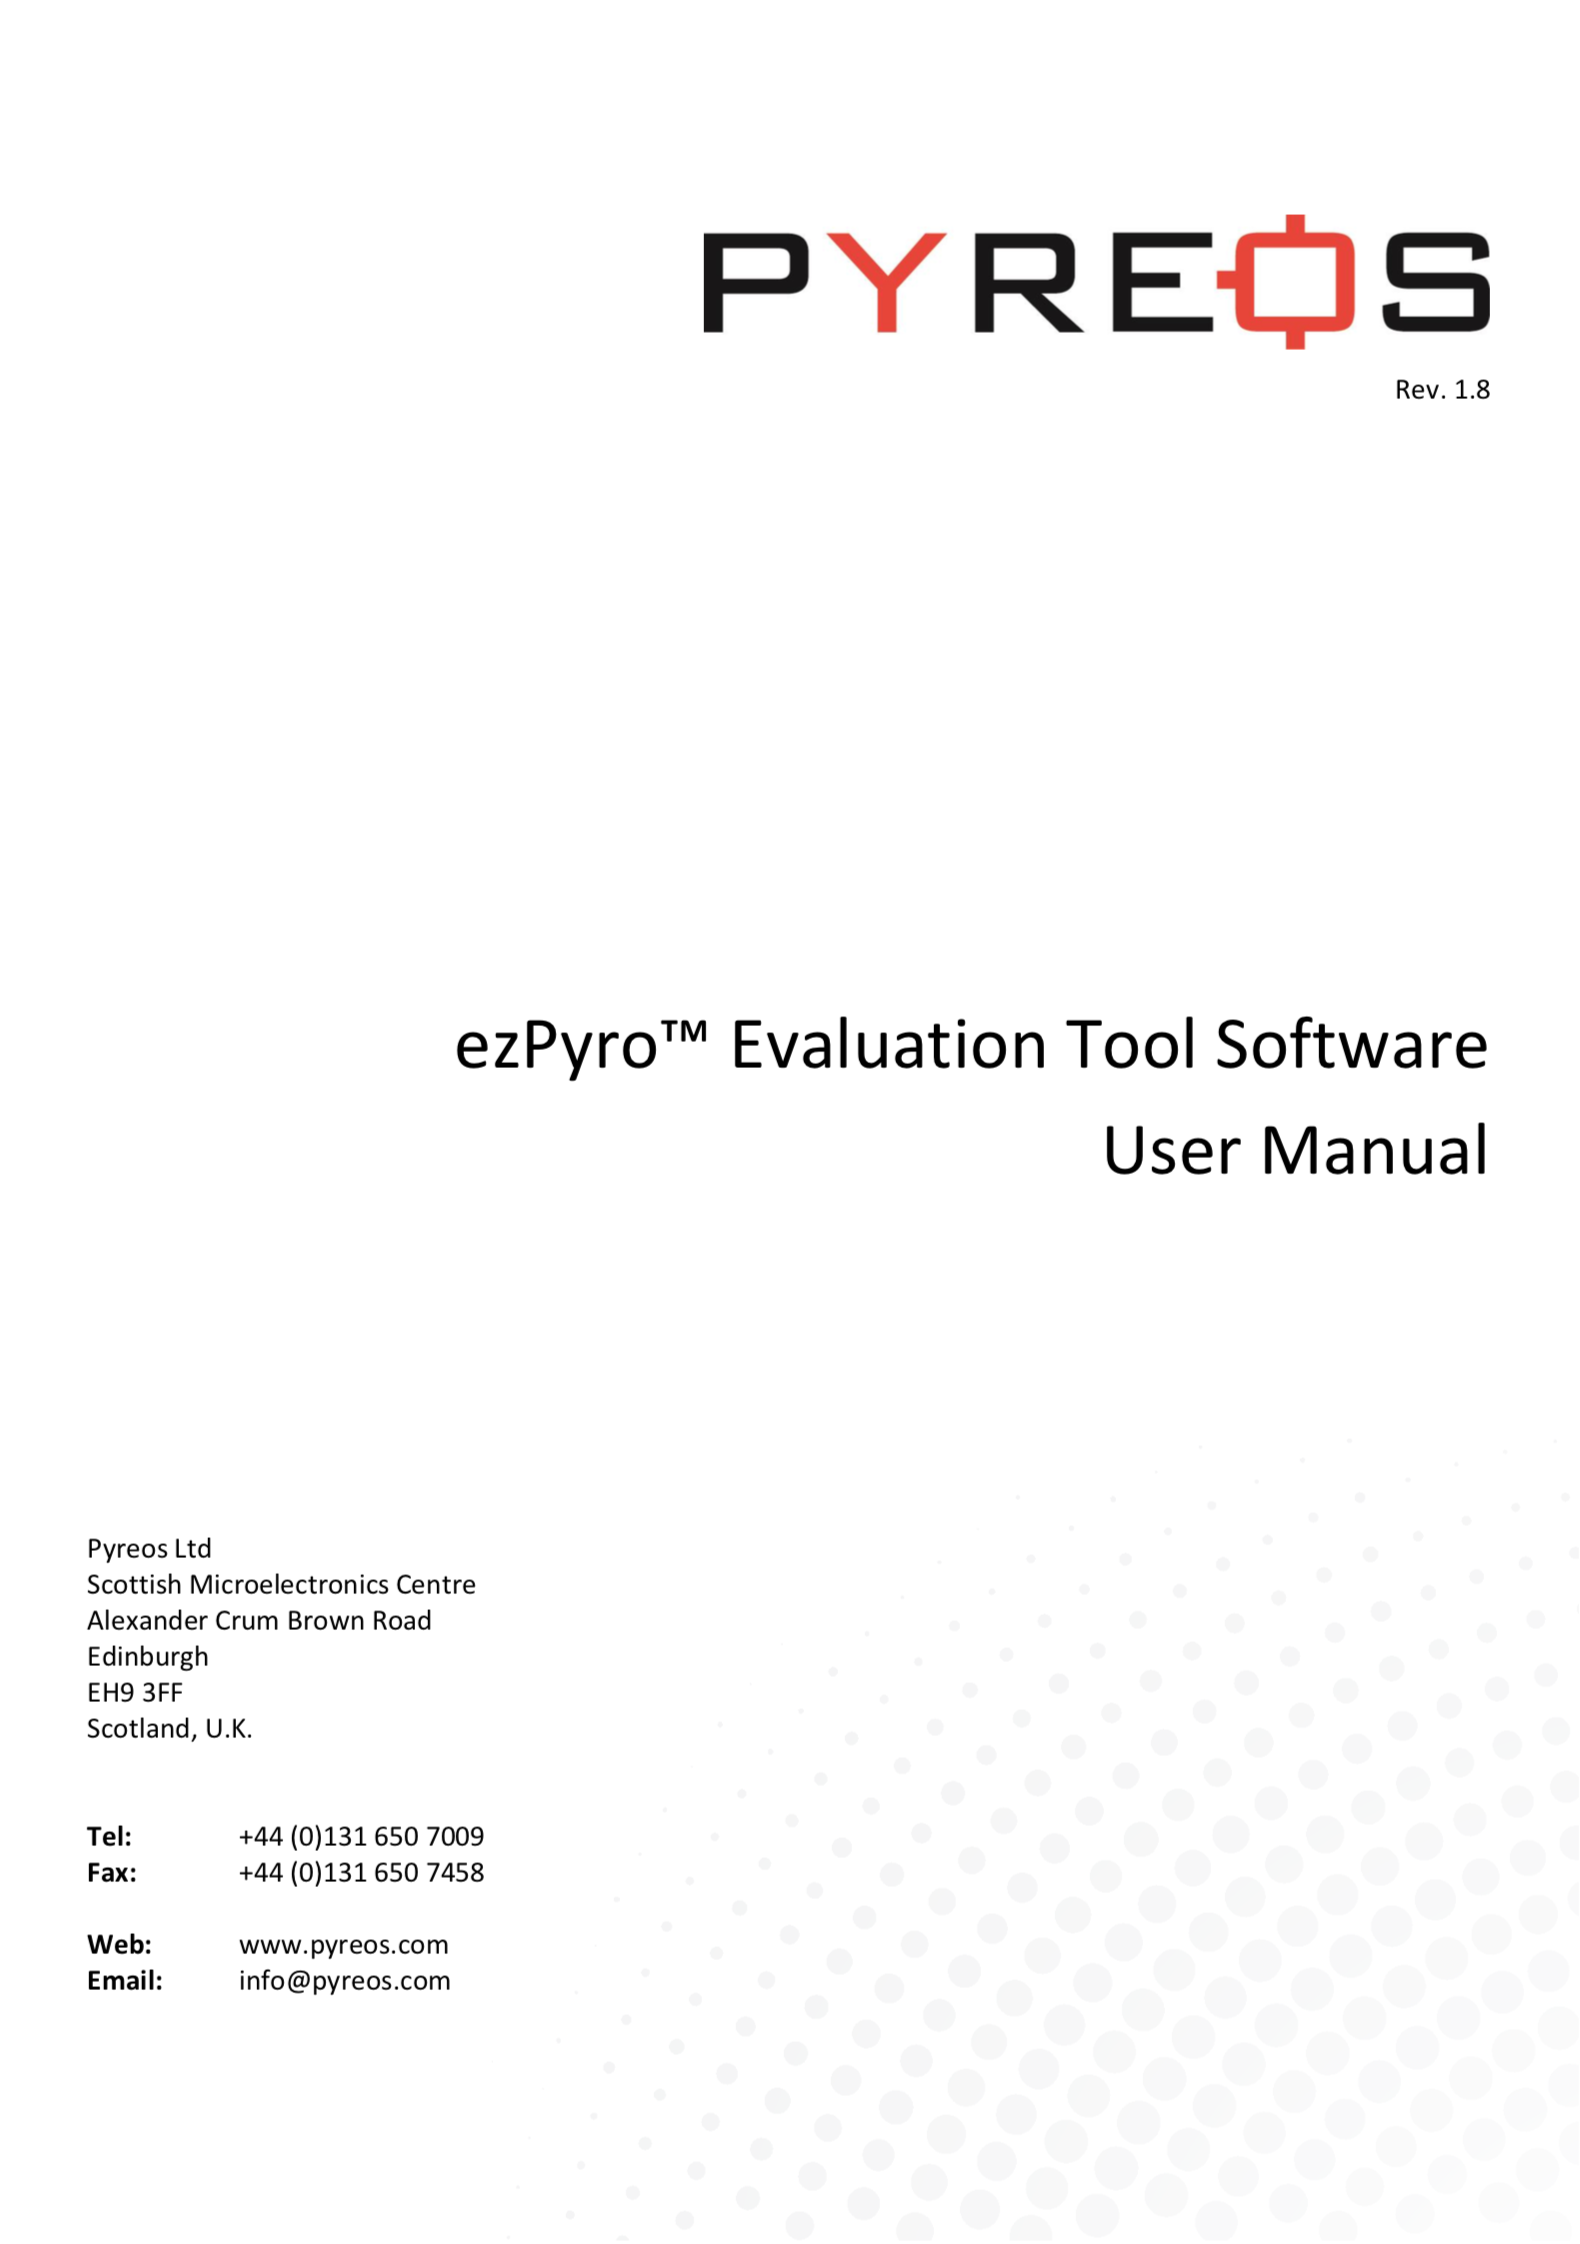 Pyreos User Manual ezPyro Evaluation Tool Software